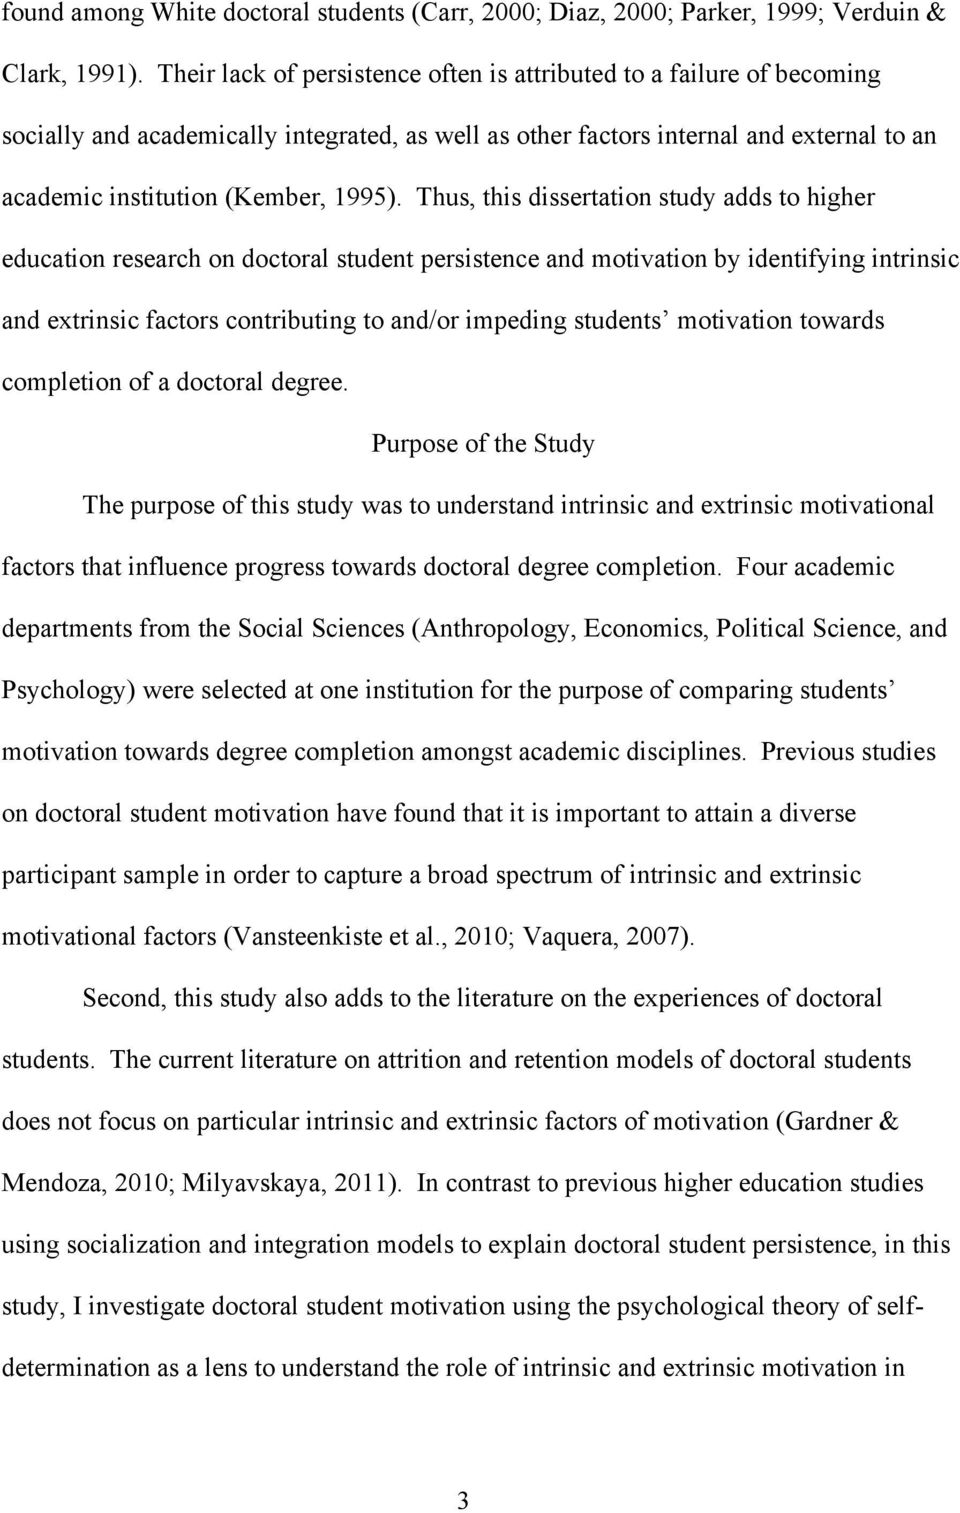 Thus, this dissertation study adds to higher education research on doctoral student persistence and motivation by identifying intrinsic and extrinsic factors contributing to and/or impeding students